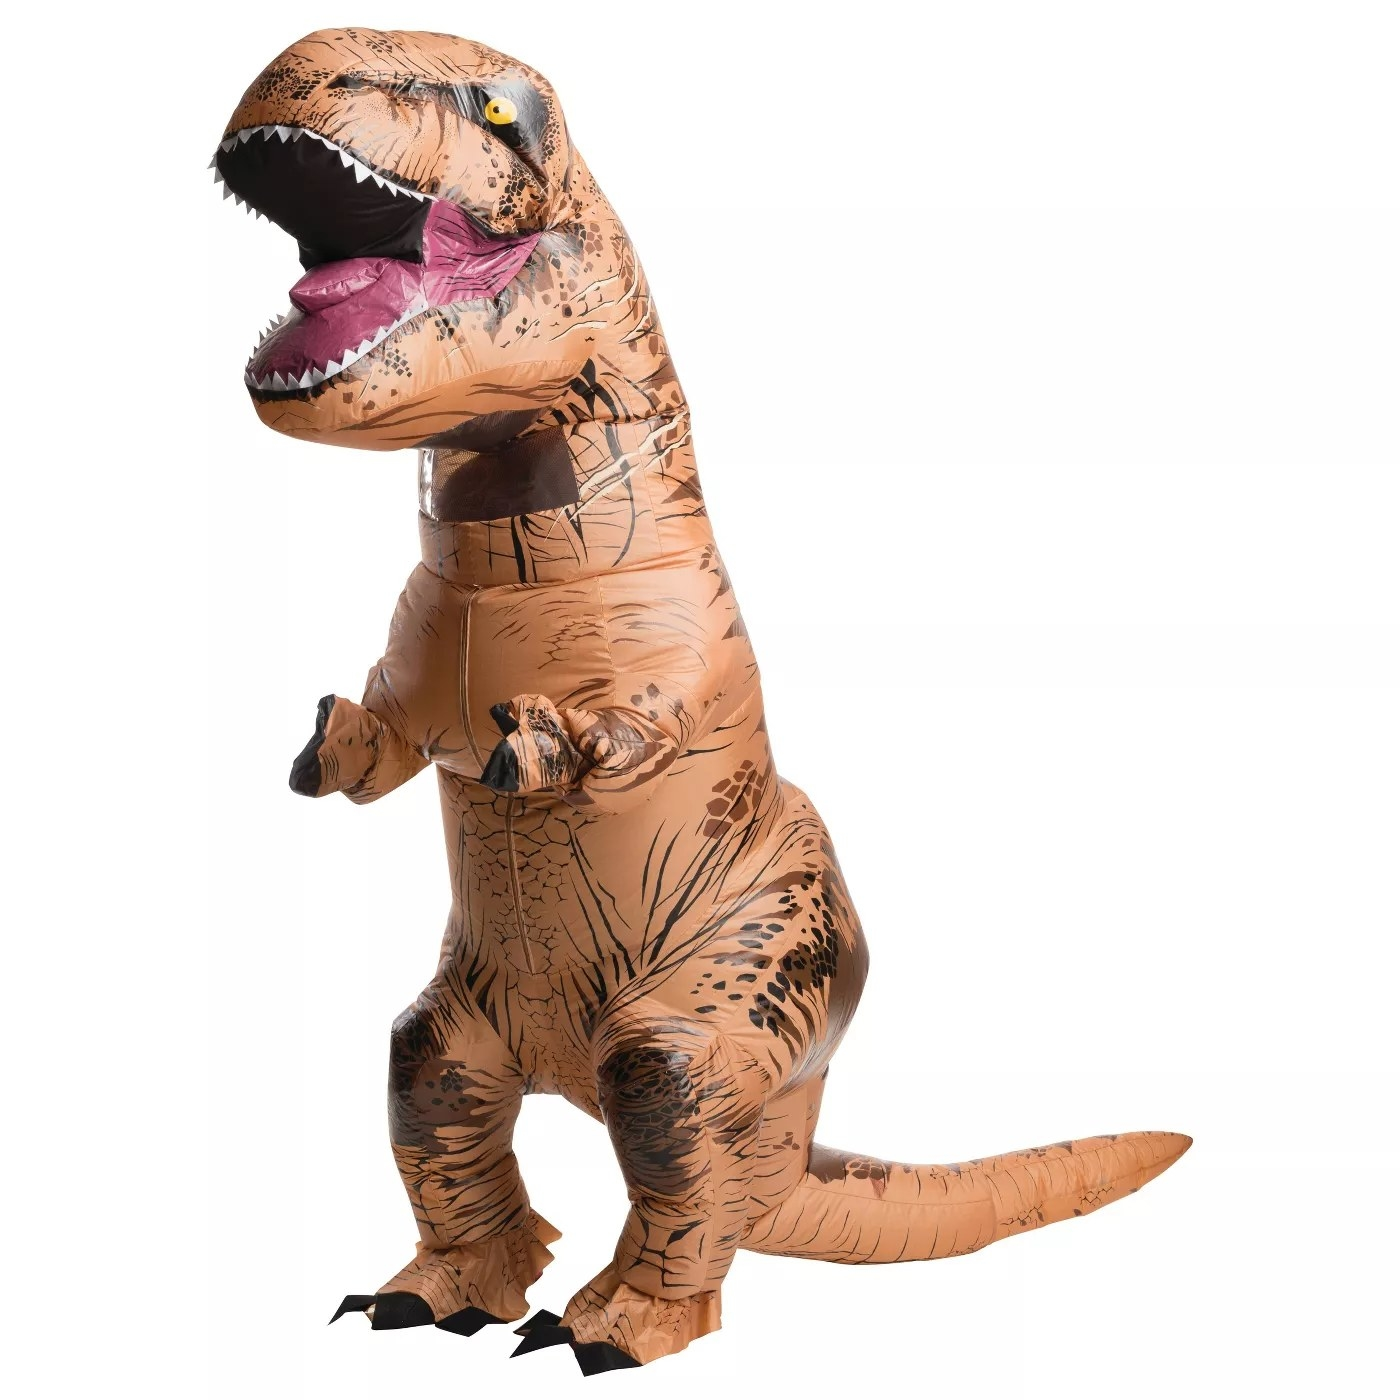 A model wearing an inflatable T-Rex costume